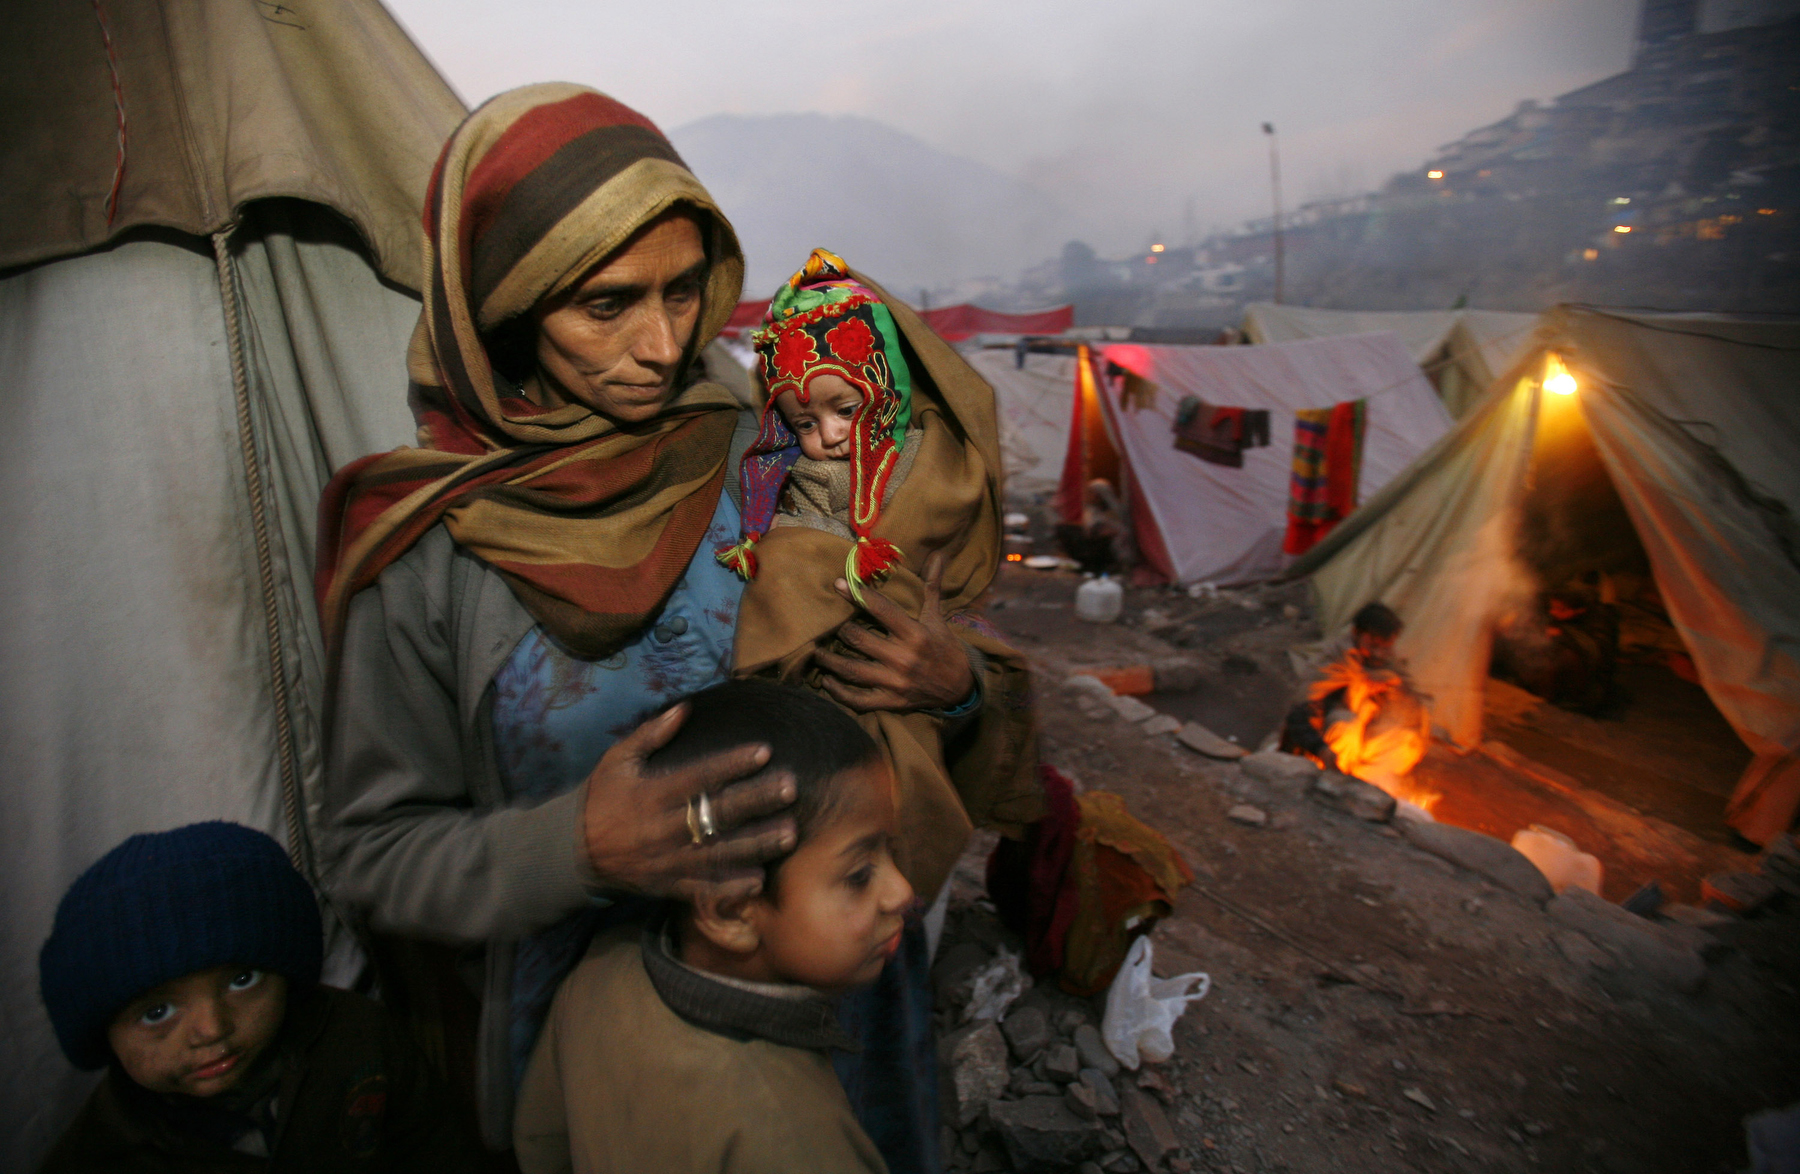 MUZAFFARABAD, PAKISTAN-DECEMBER 16: Nasim Jan holds her daughter Mehnaz, 2 months old with Farooq and Abdullah as try and keep warm residing at a tented camp in Muzaffarabad, December 16, 2005. The camp has over 700 tents housing 3,336 earthquake victims who have moved from various area villages for the winter months.  Lack of snow is giving the quake survivors a break but they are still struggling in over crowded tented camps while fighting the cold weather with a lack of shelter.  (photo by Paula Bronstein /Getty Images)